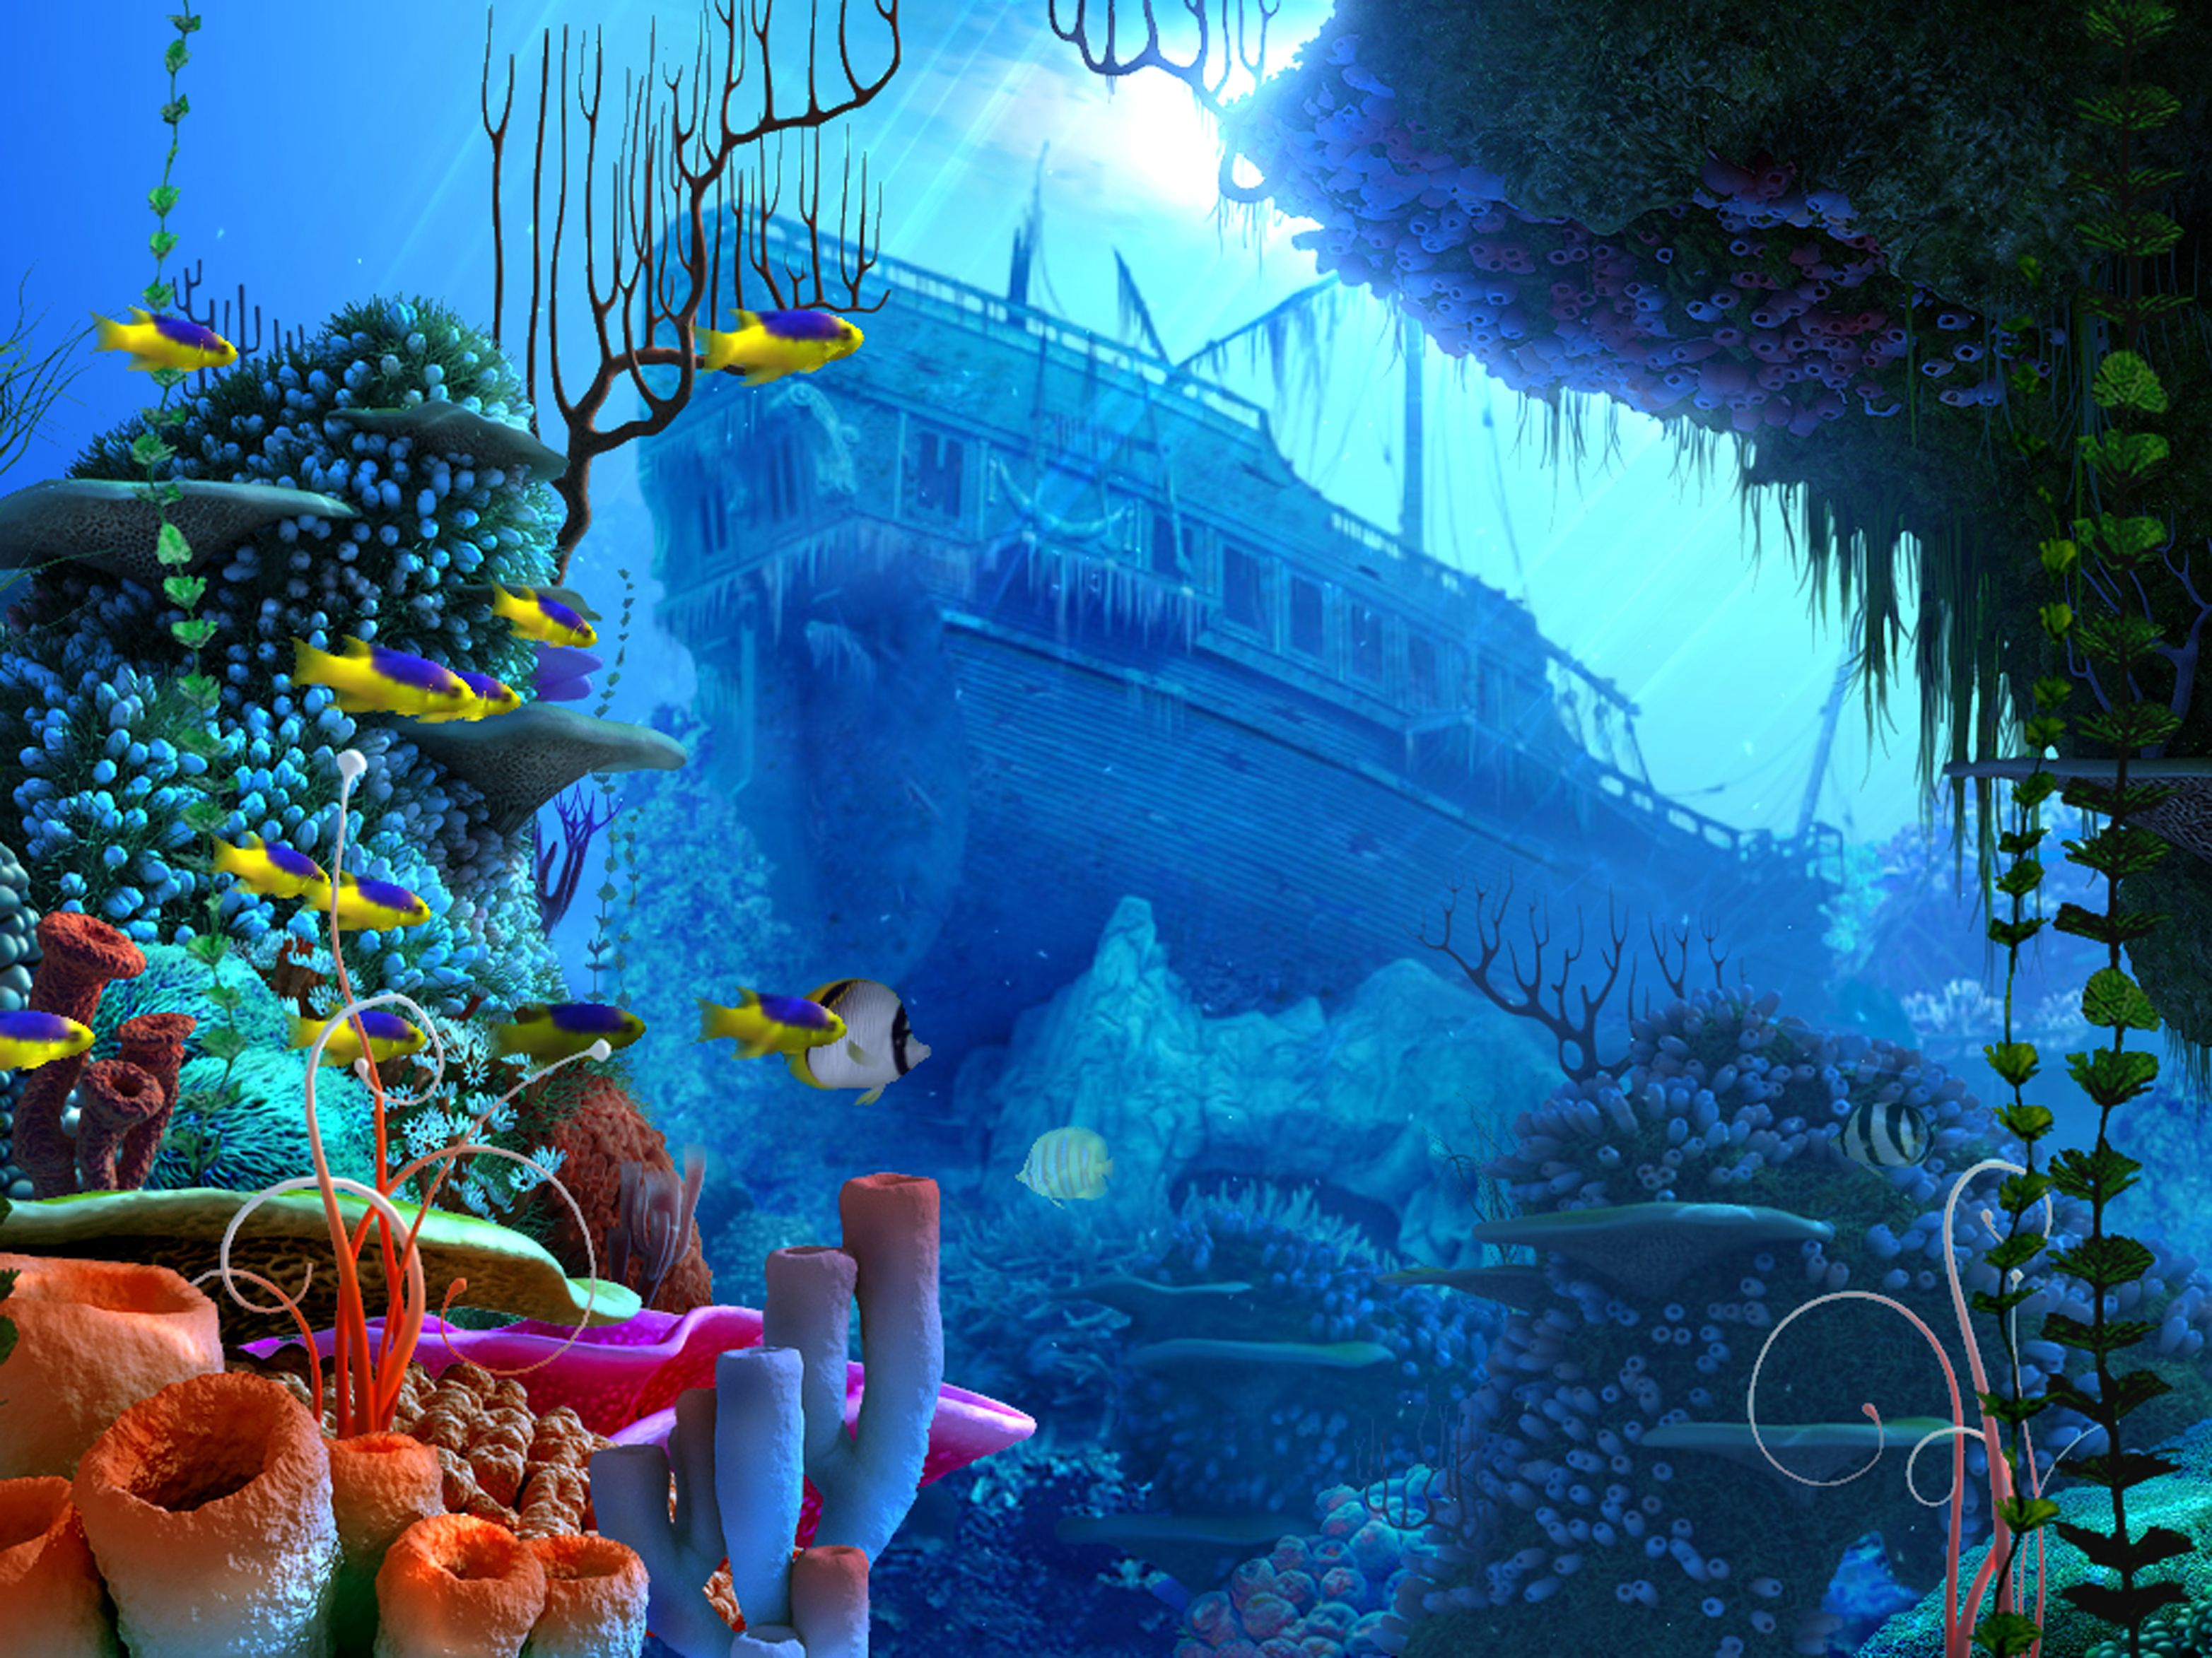 Fish aquarium jabalpur - 193 Best Images About Stunning Water Views On Pinterest Octopus Whale Sharks And Islands